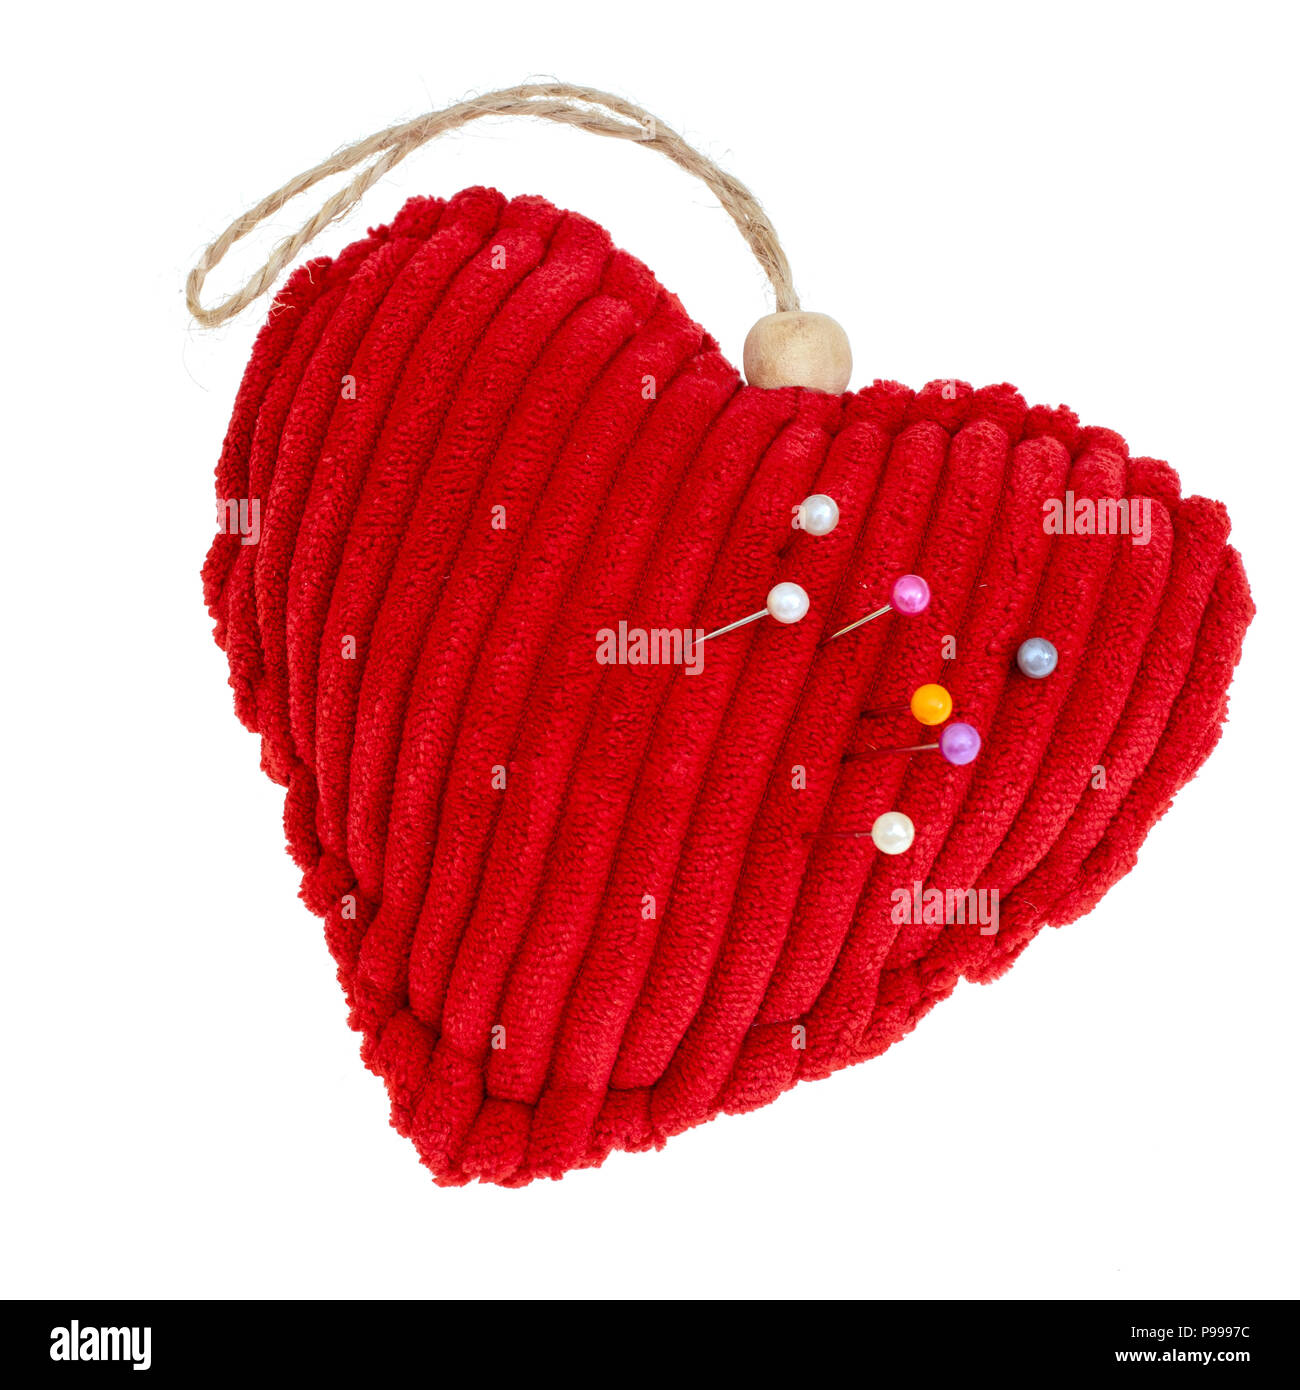 Red cord fabric heart shape pincushion isolated on white. With pins. - Stock Image